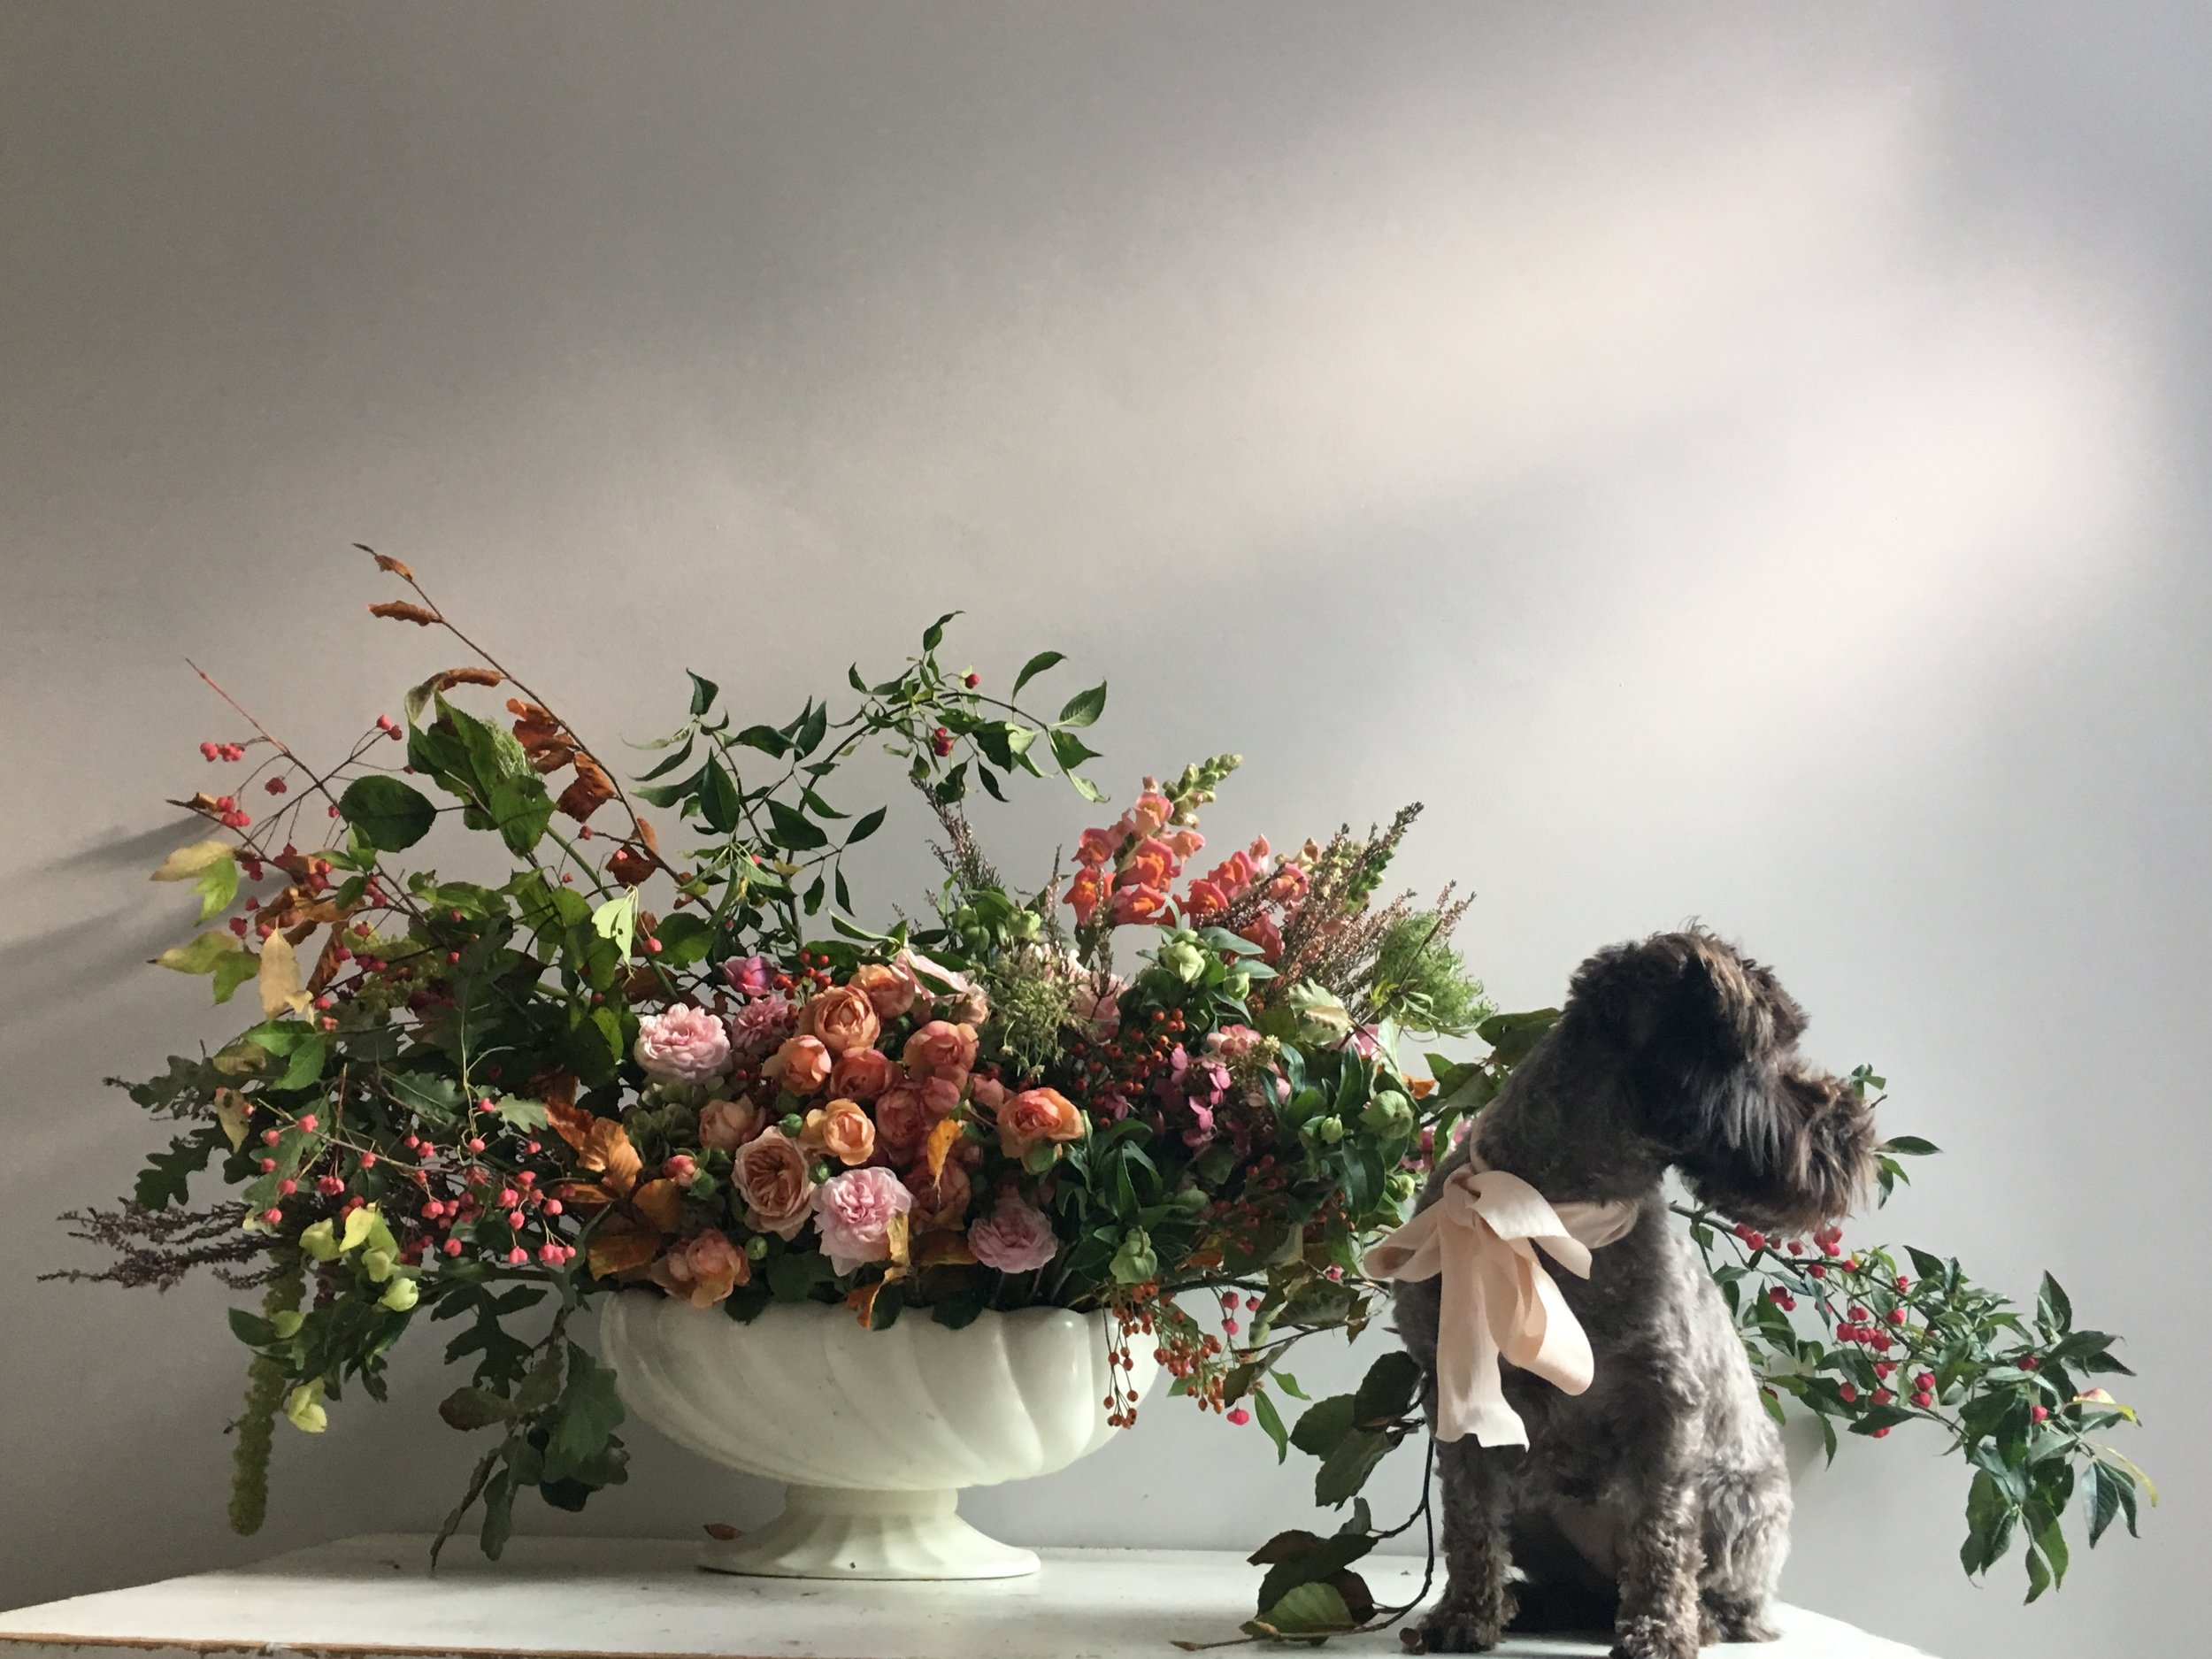 Hilda posing with a September arrangement   Flowers by: Honeysuckle and Hilda  Photo by: Claire Bowen